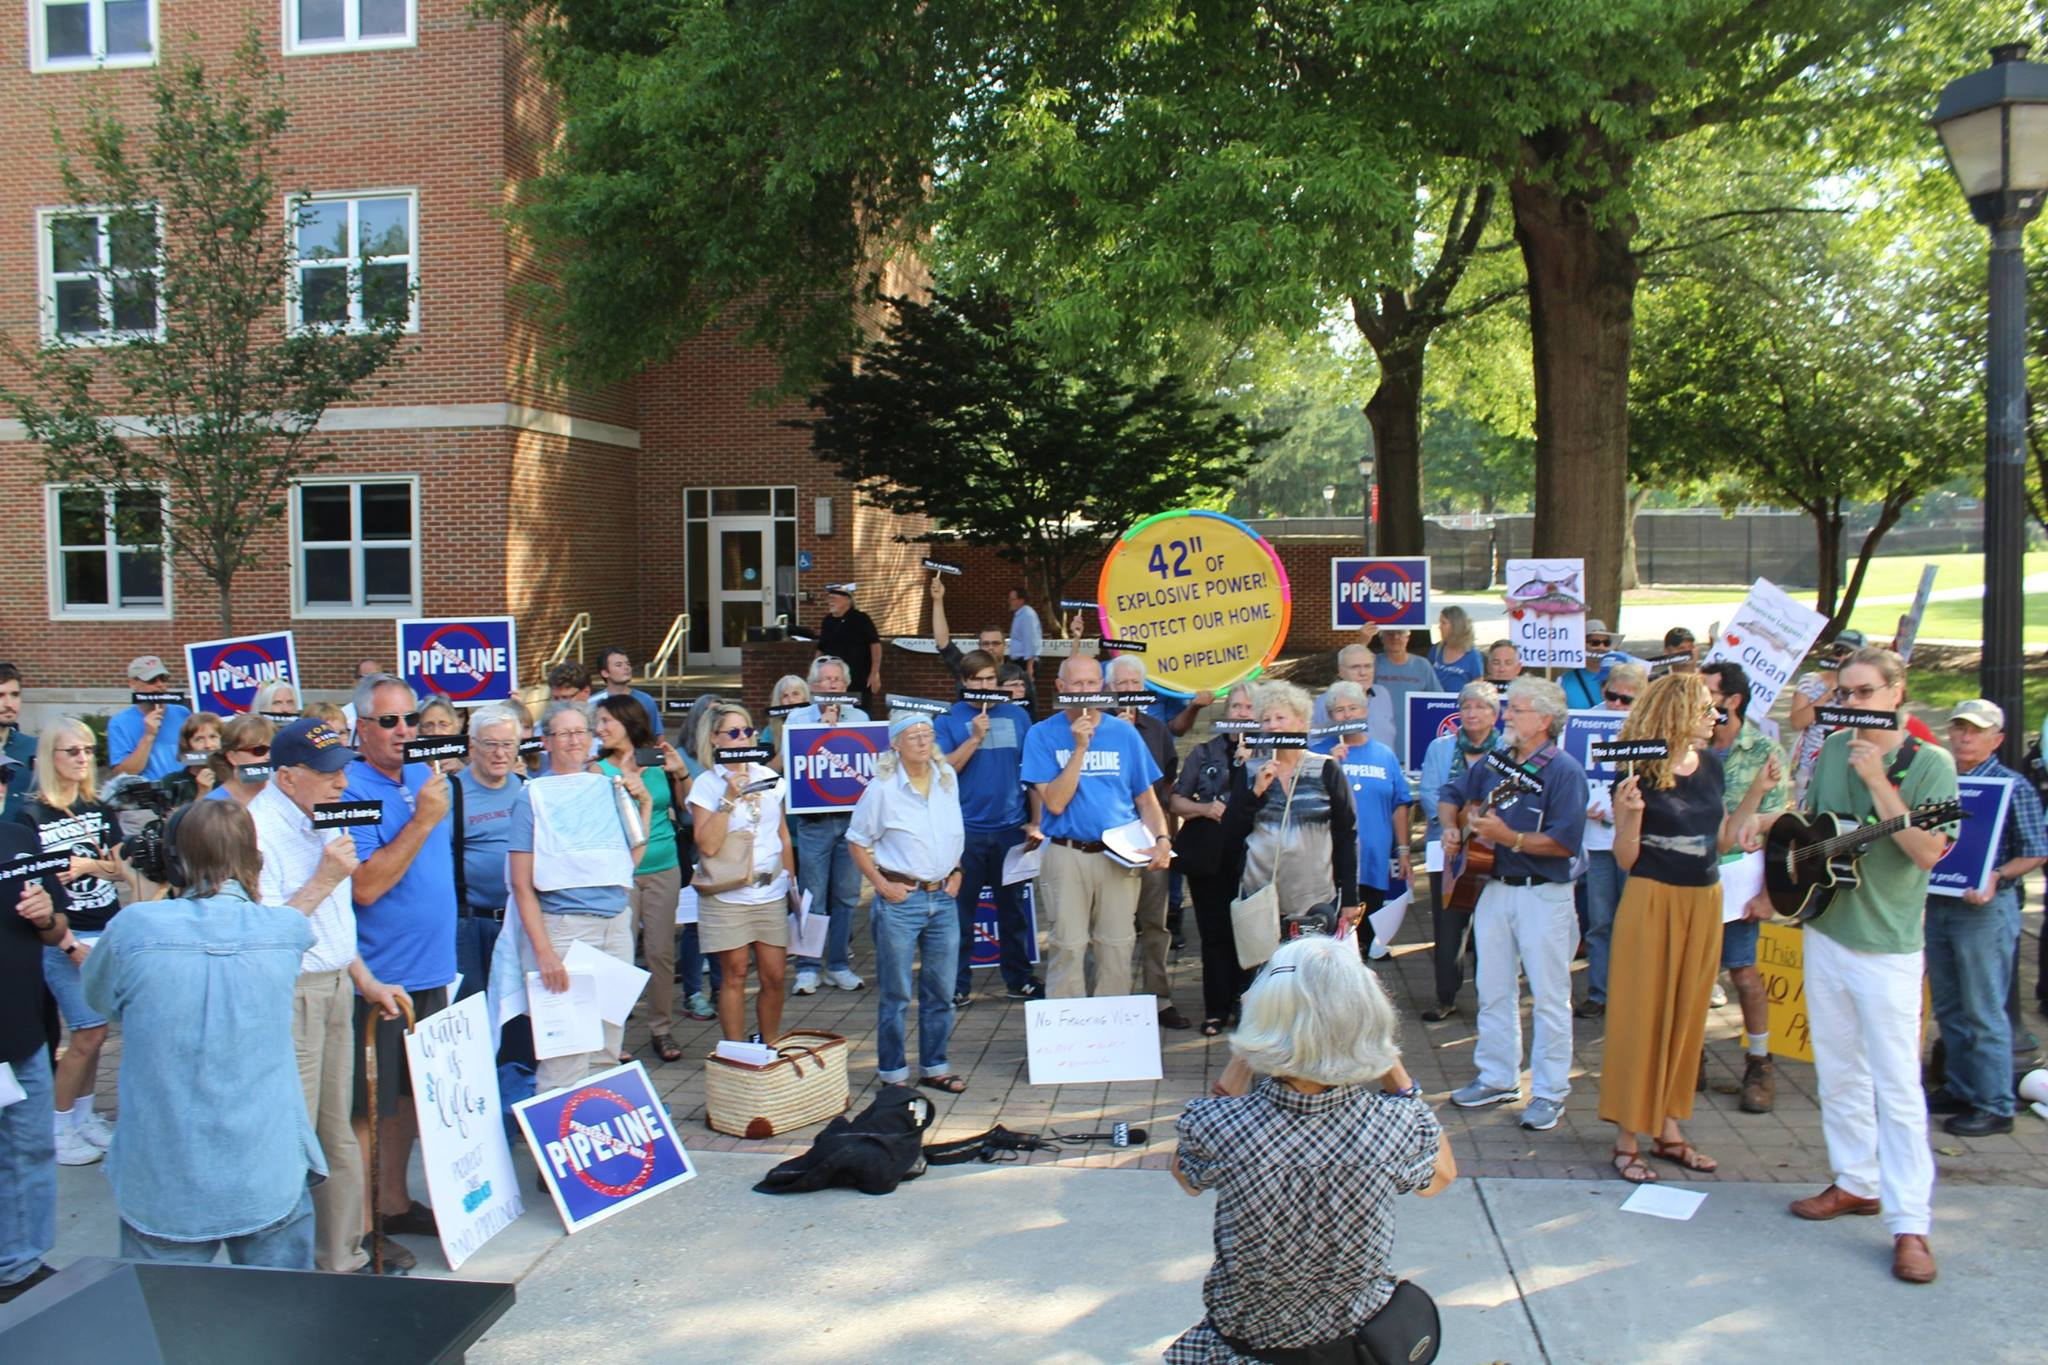 Mountain Valley Pipeline public hearings at VA DEA, August 2017 (Photo: POWHR-Protect Our Water Heritage Rights)